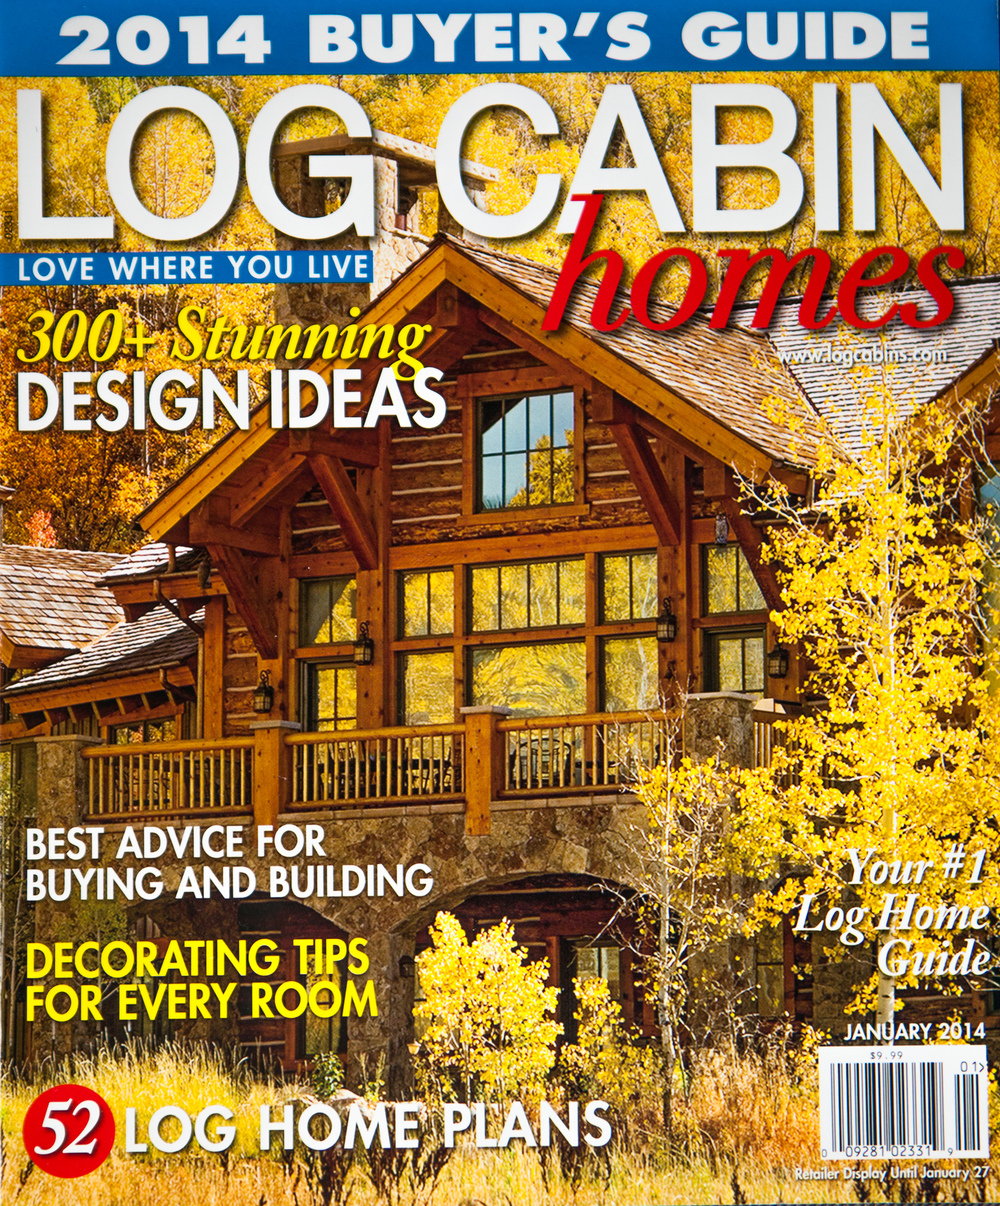 blog in cabins the they of very perfect people also most around magazine centuries resistant garden been world architecture and cabin affordable living new one types home homes log design for have are